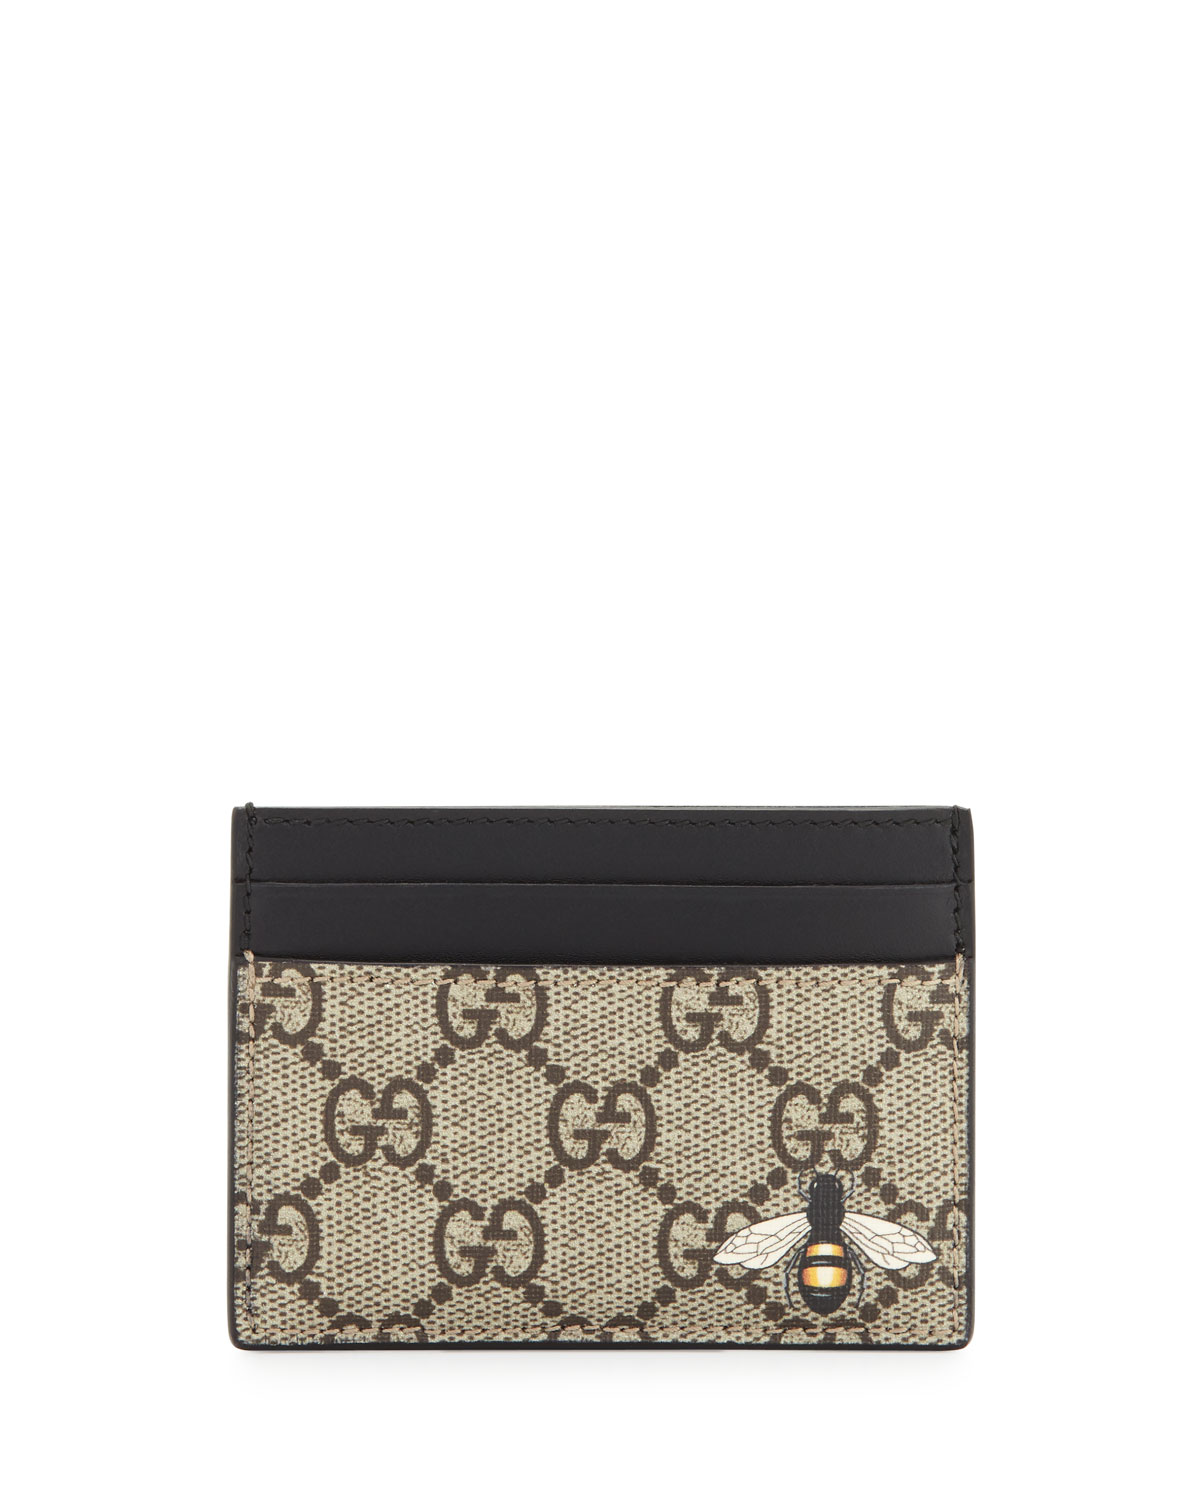 Gucci Bestiary Bee-Print GG Supreme Card Case  49b6f032a9be5